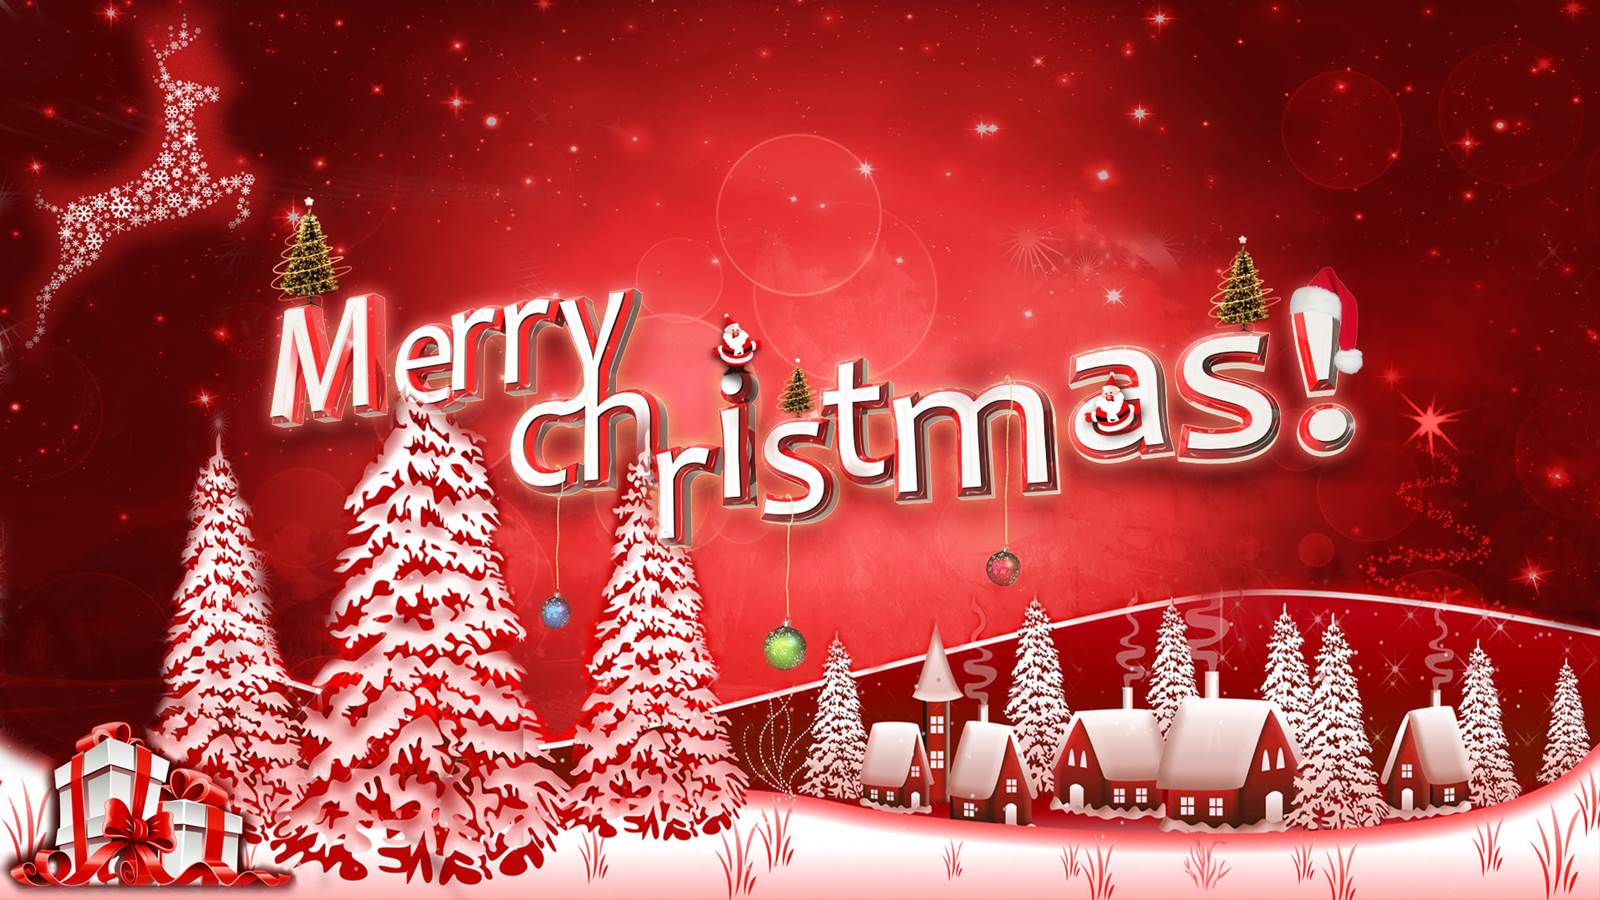 christmas wishes wallpapers download free